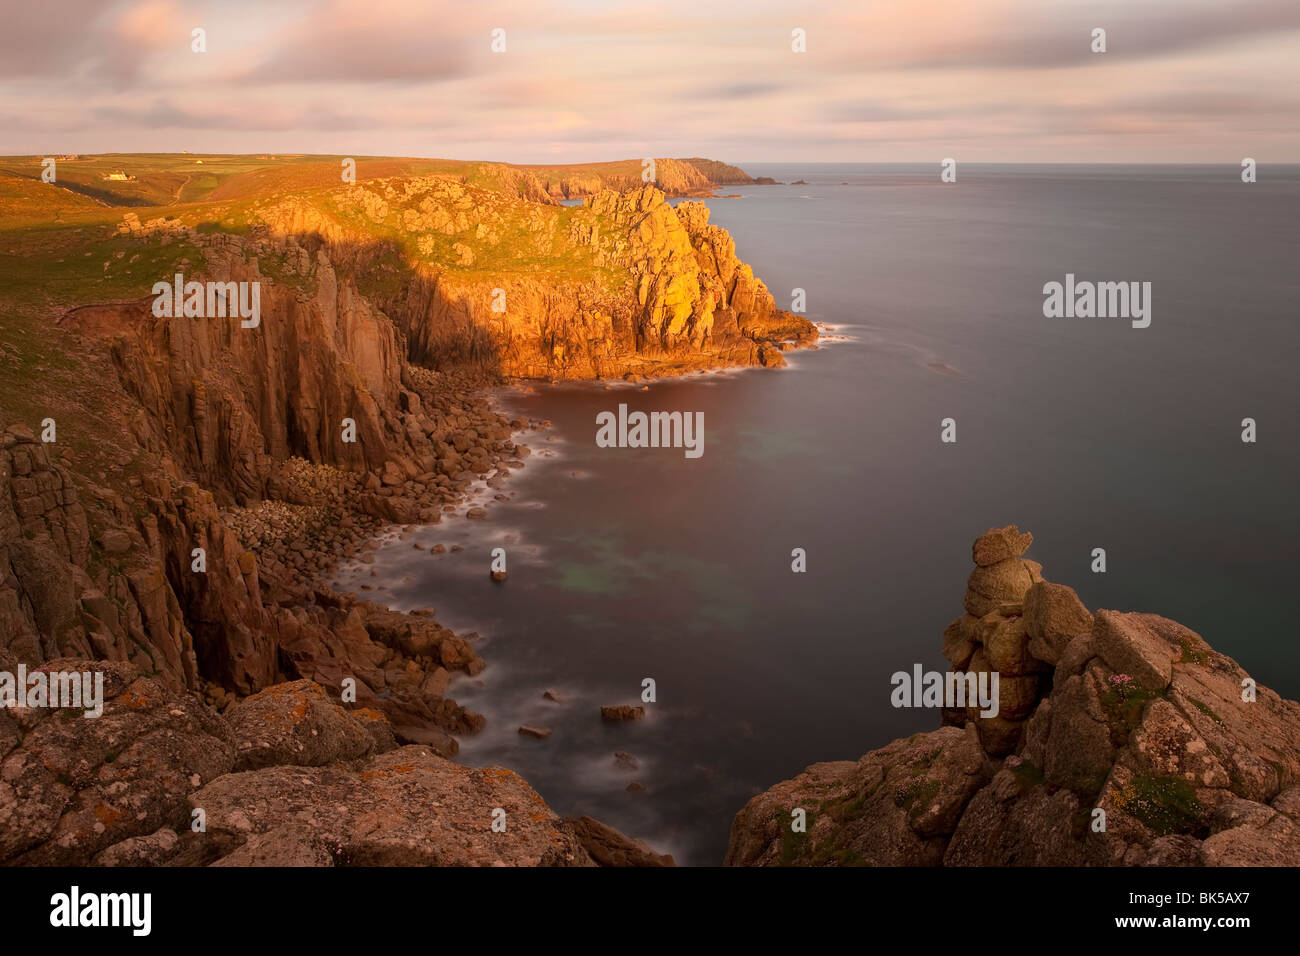 Towering cliffs of Lands End, Cornwall, England, United Kingdom, Europe - Stock Image